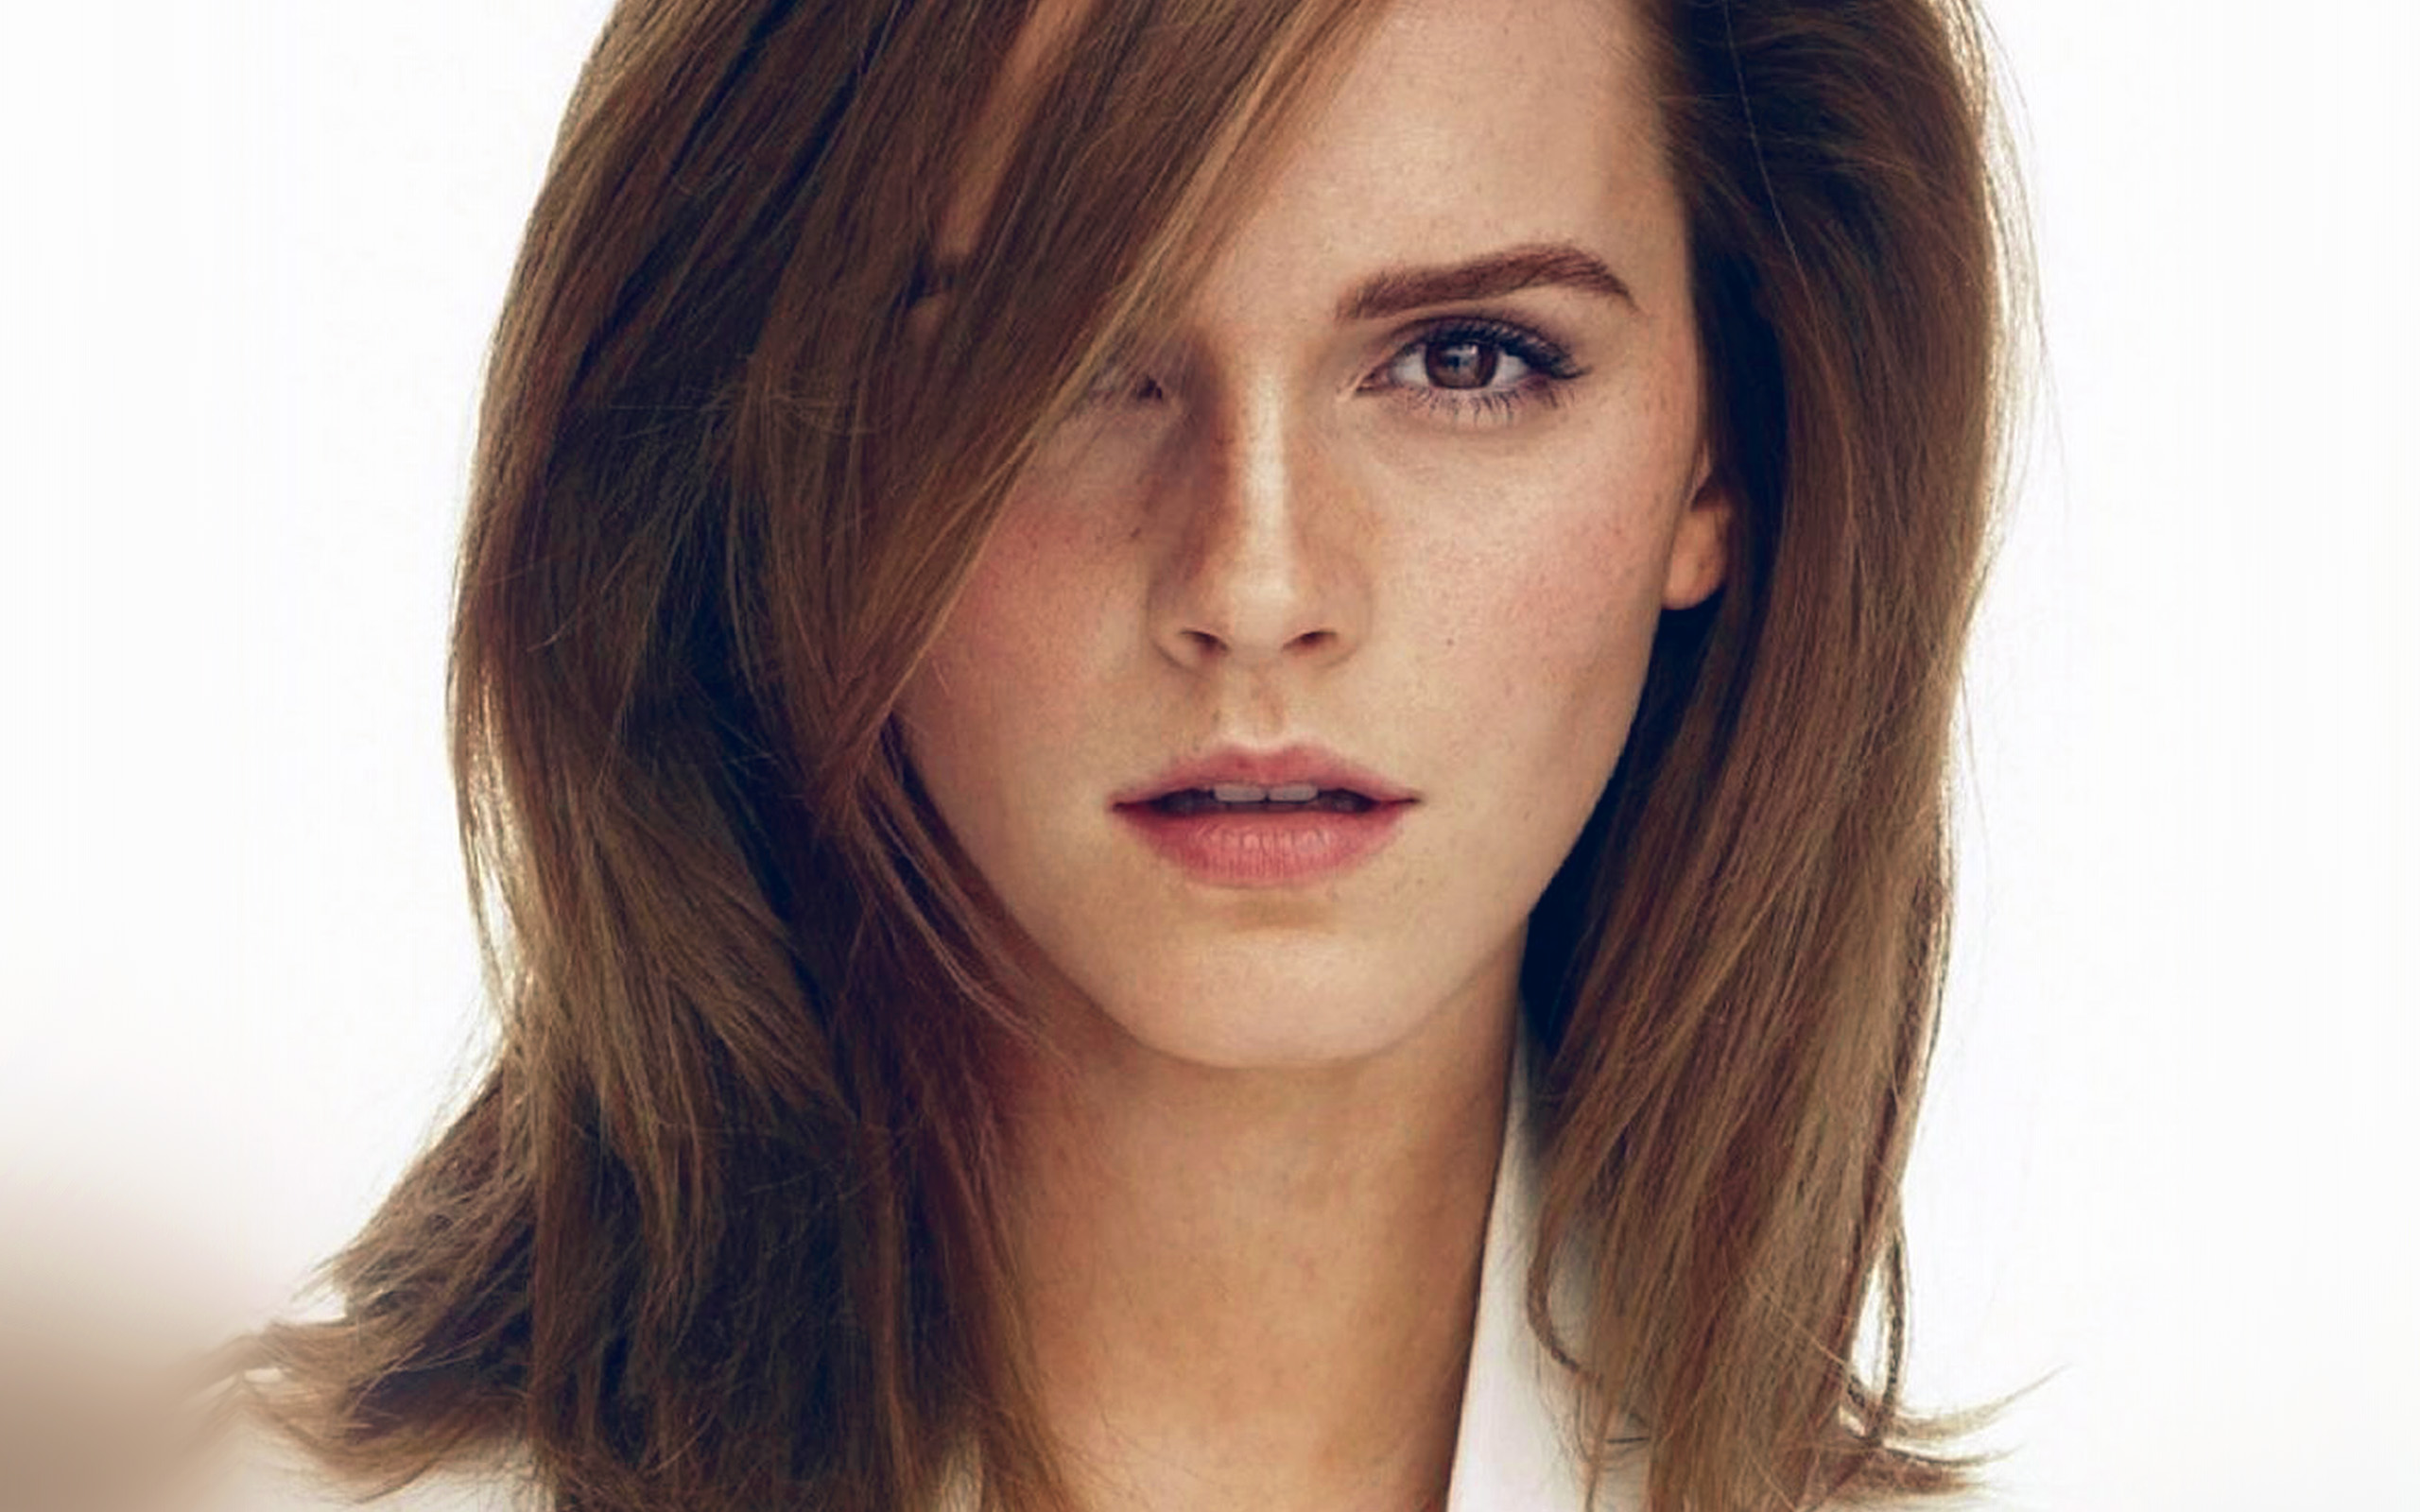 Cute Girl Wallpapers For Iphone Hp25 Girl Emma Watson Face Actress Film Wallpaper